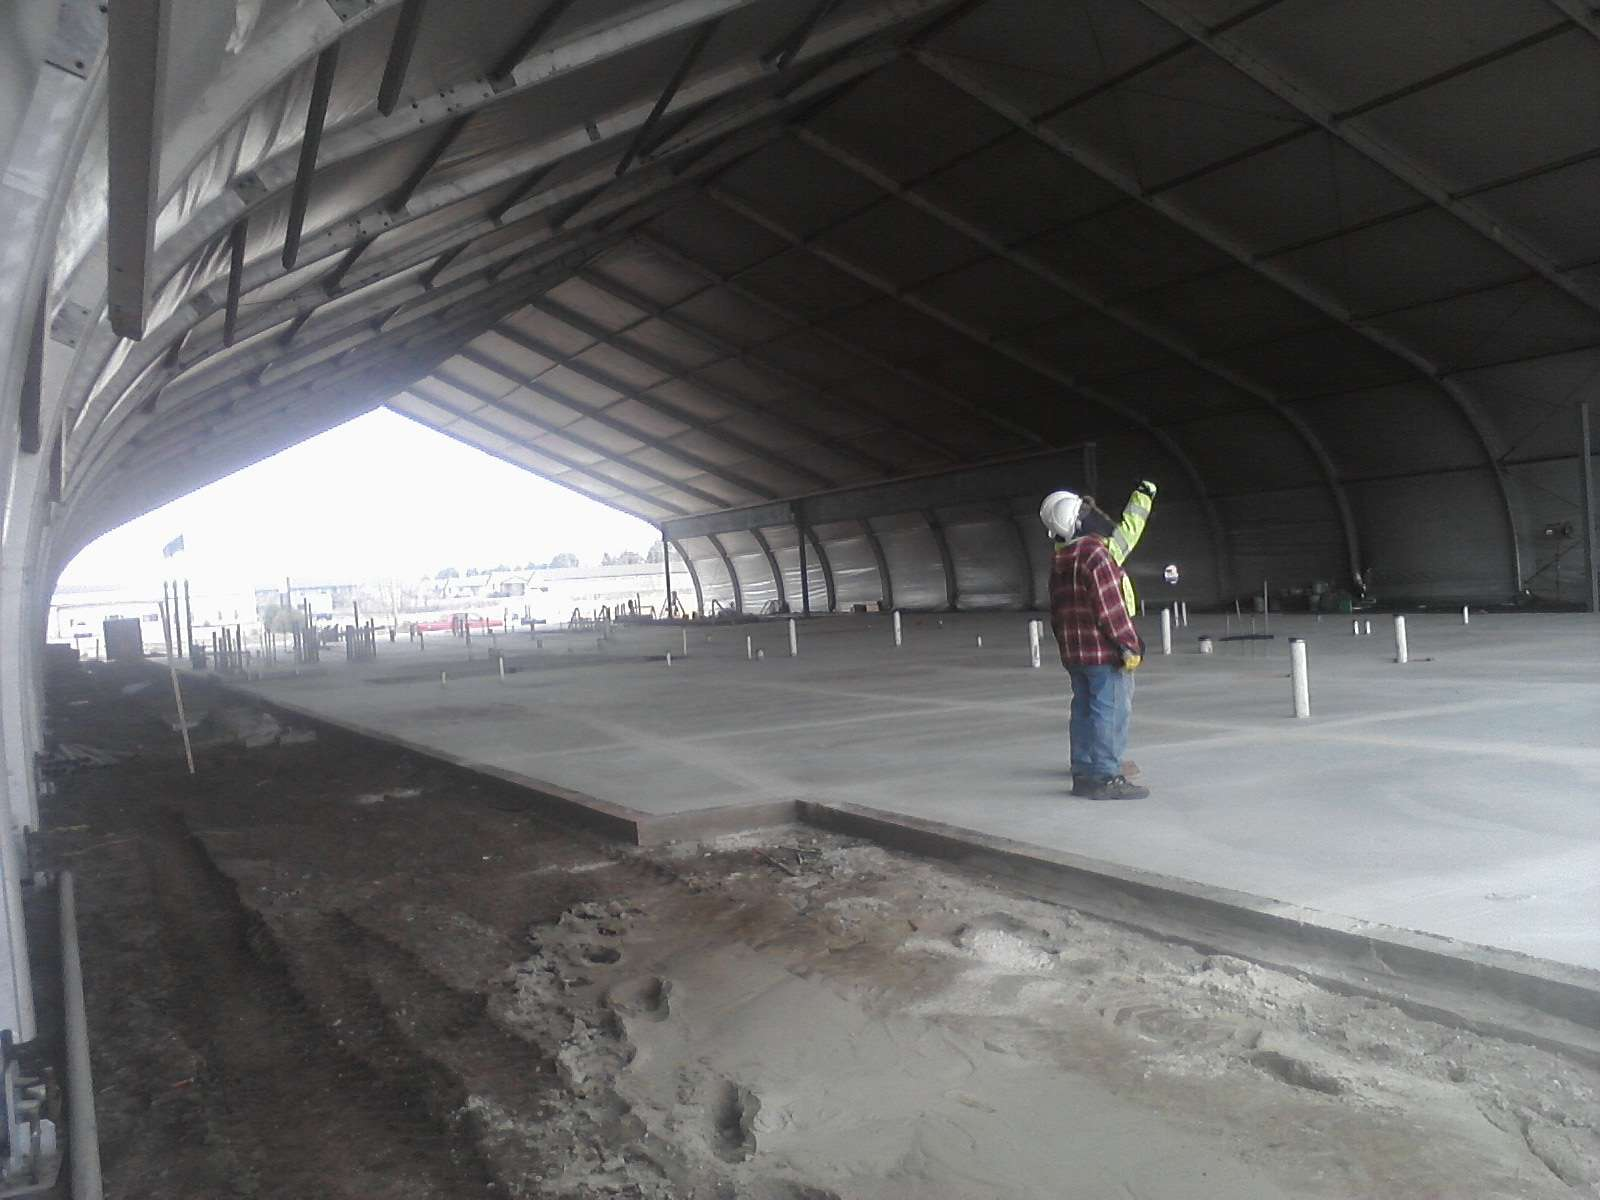 interior shot of large footprint tension fabric building under contsruction with engineers observing the process on concrete foundation